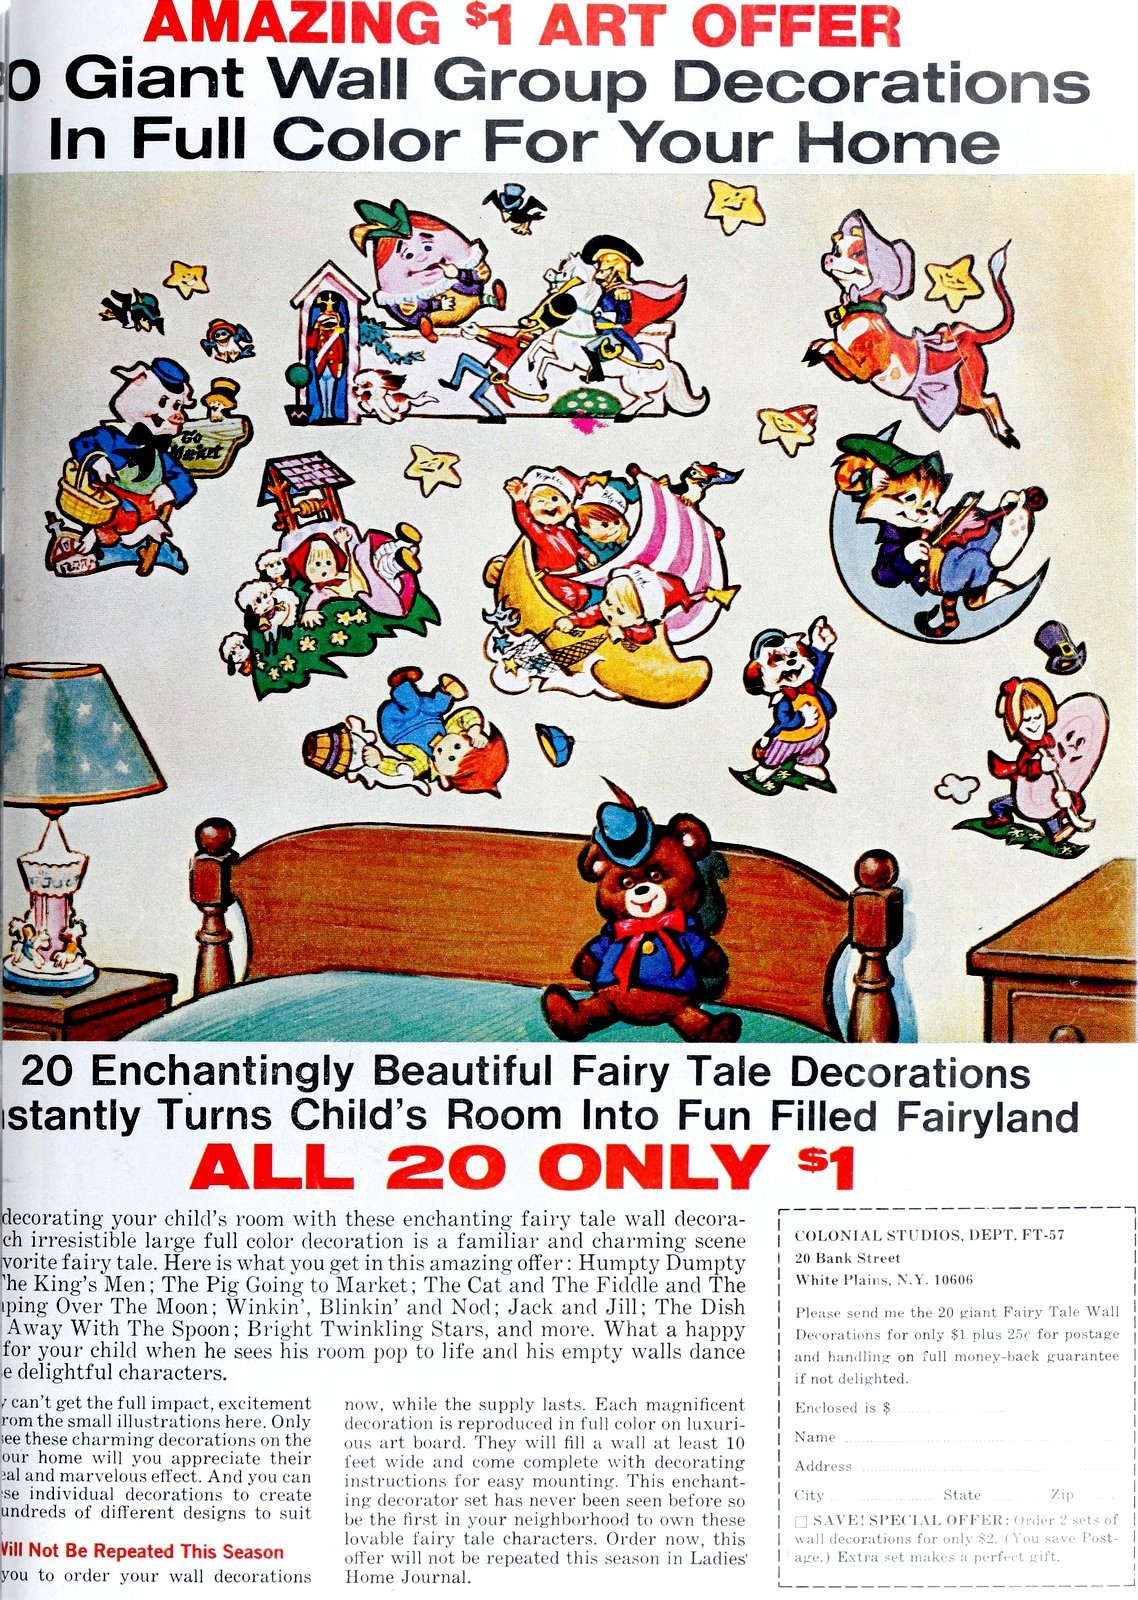 Giant wall stickers for DIY child's bedroom decor (1967)